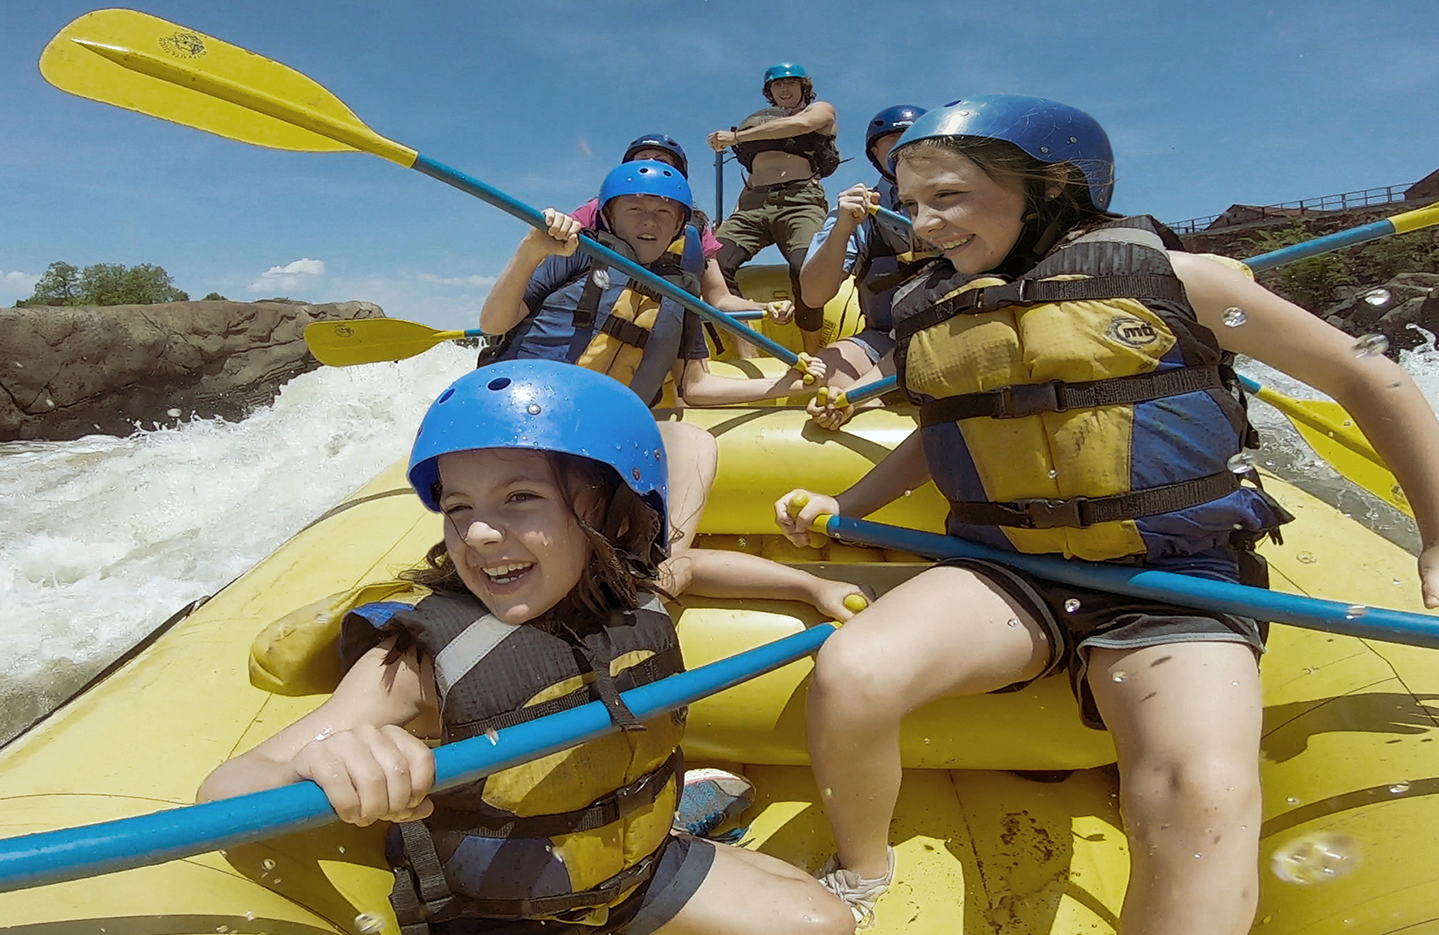 RushSouth_Whitewater Rafting_2b.jpg